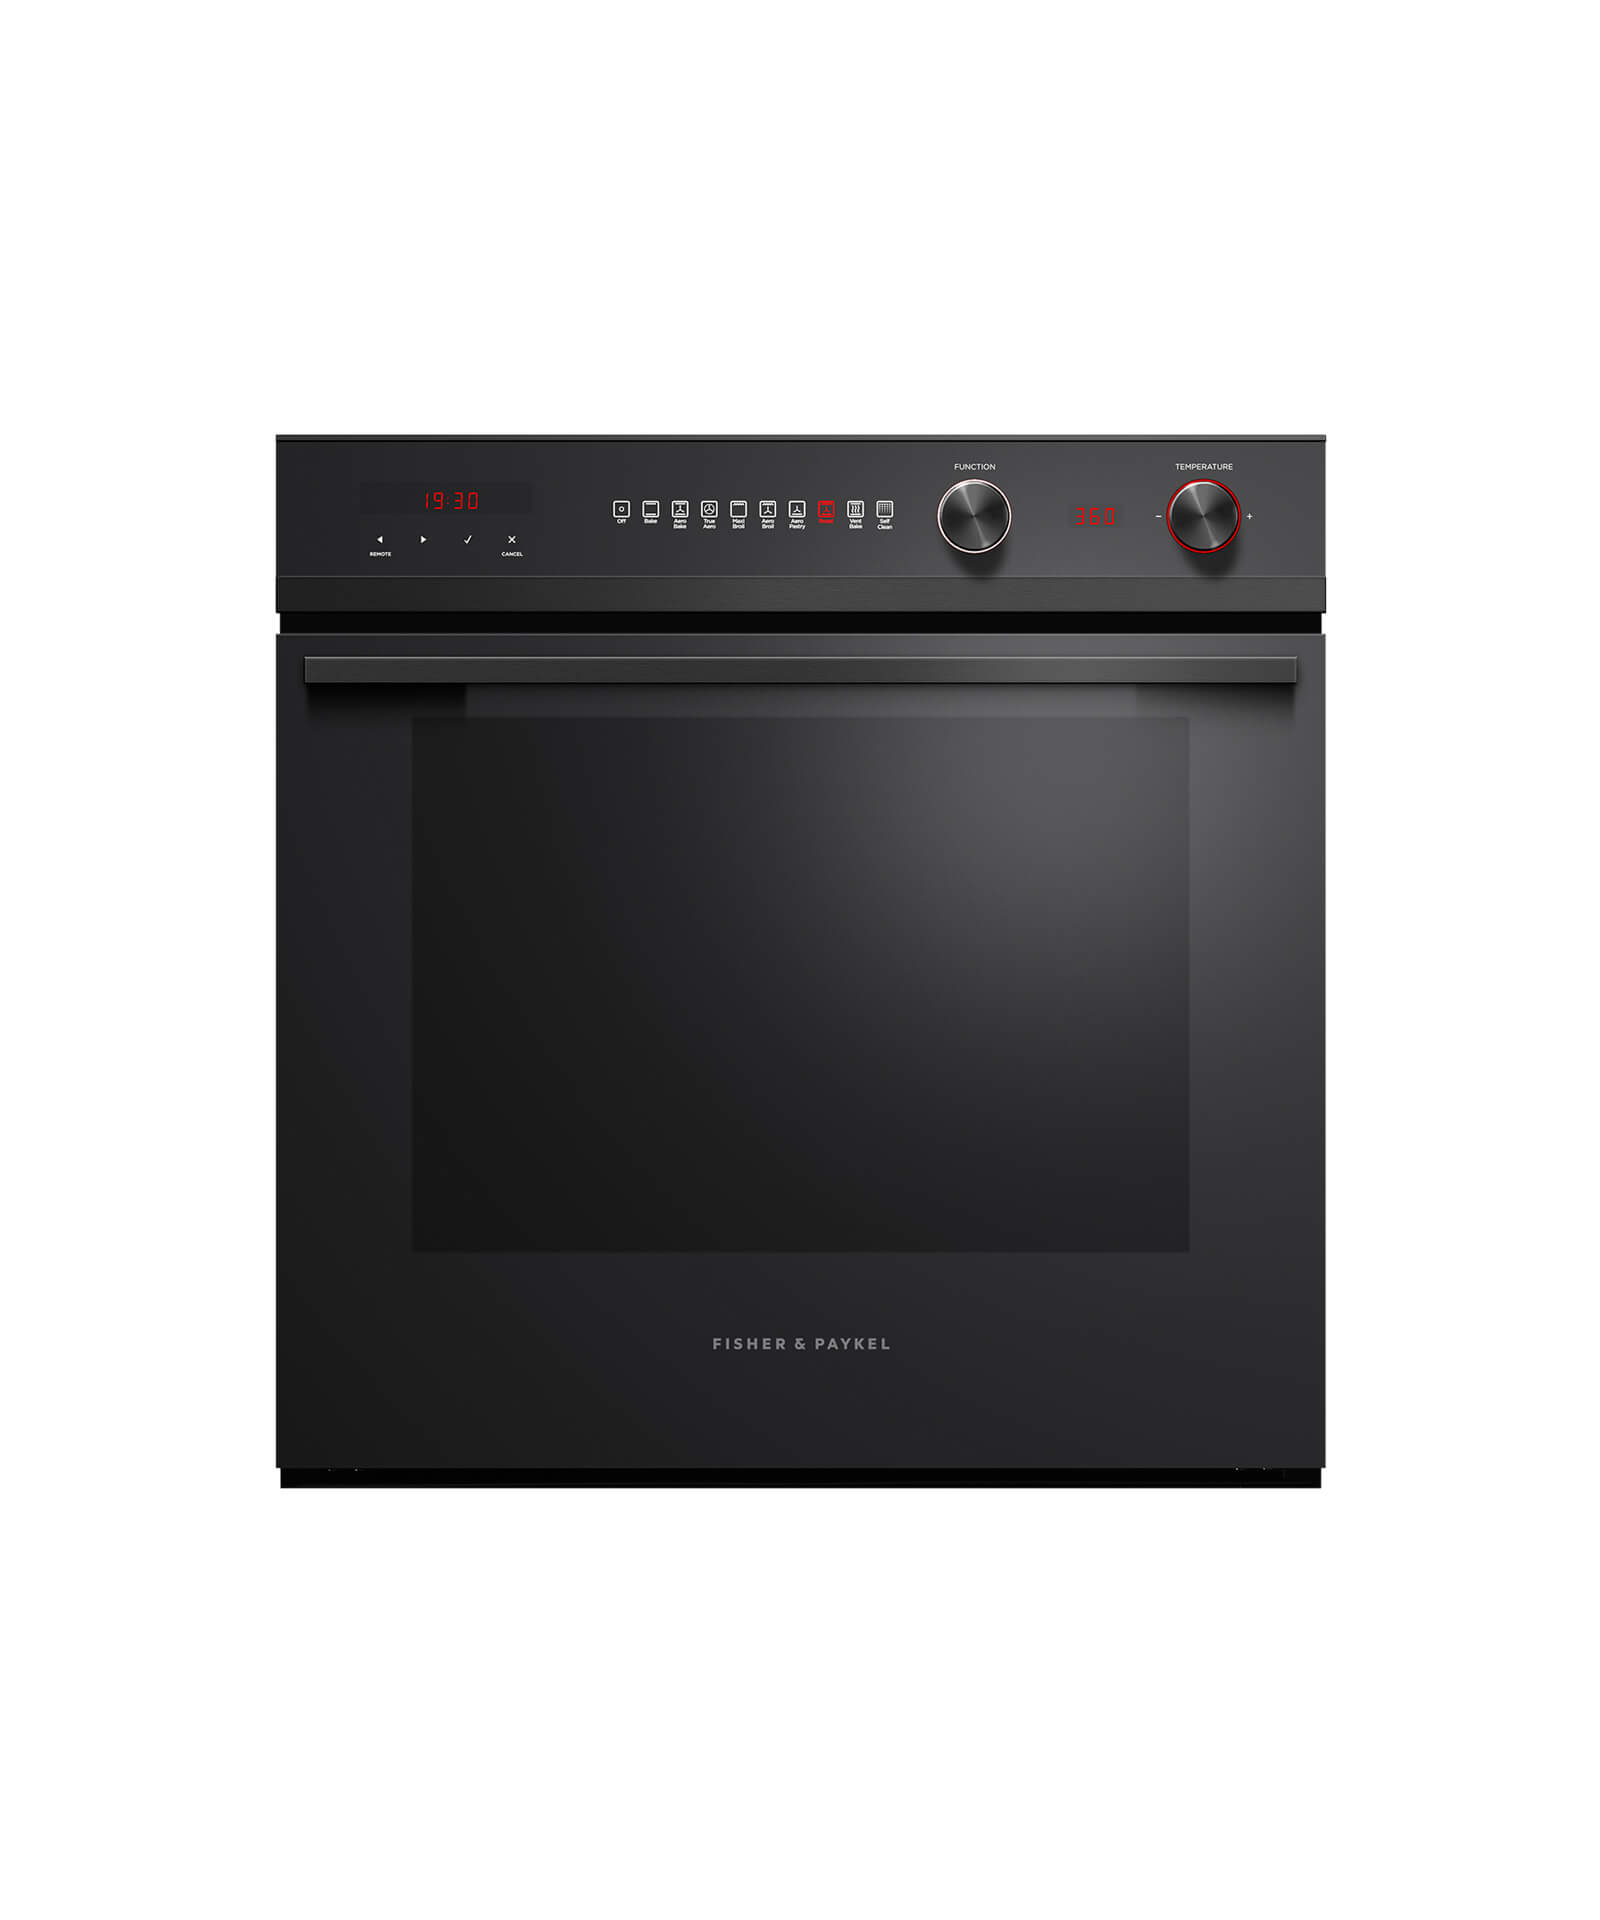 "Fisher and Paykel Built-in Oven, 24"" 3 cu ft, 9 Function, Self-cleaning"